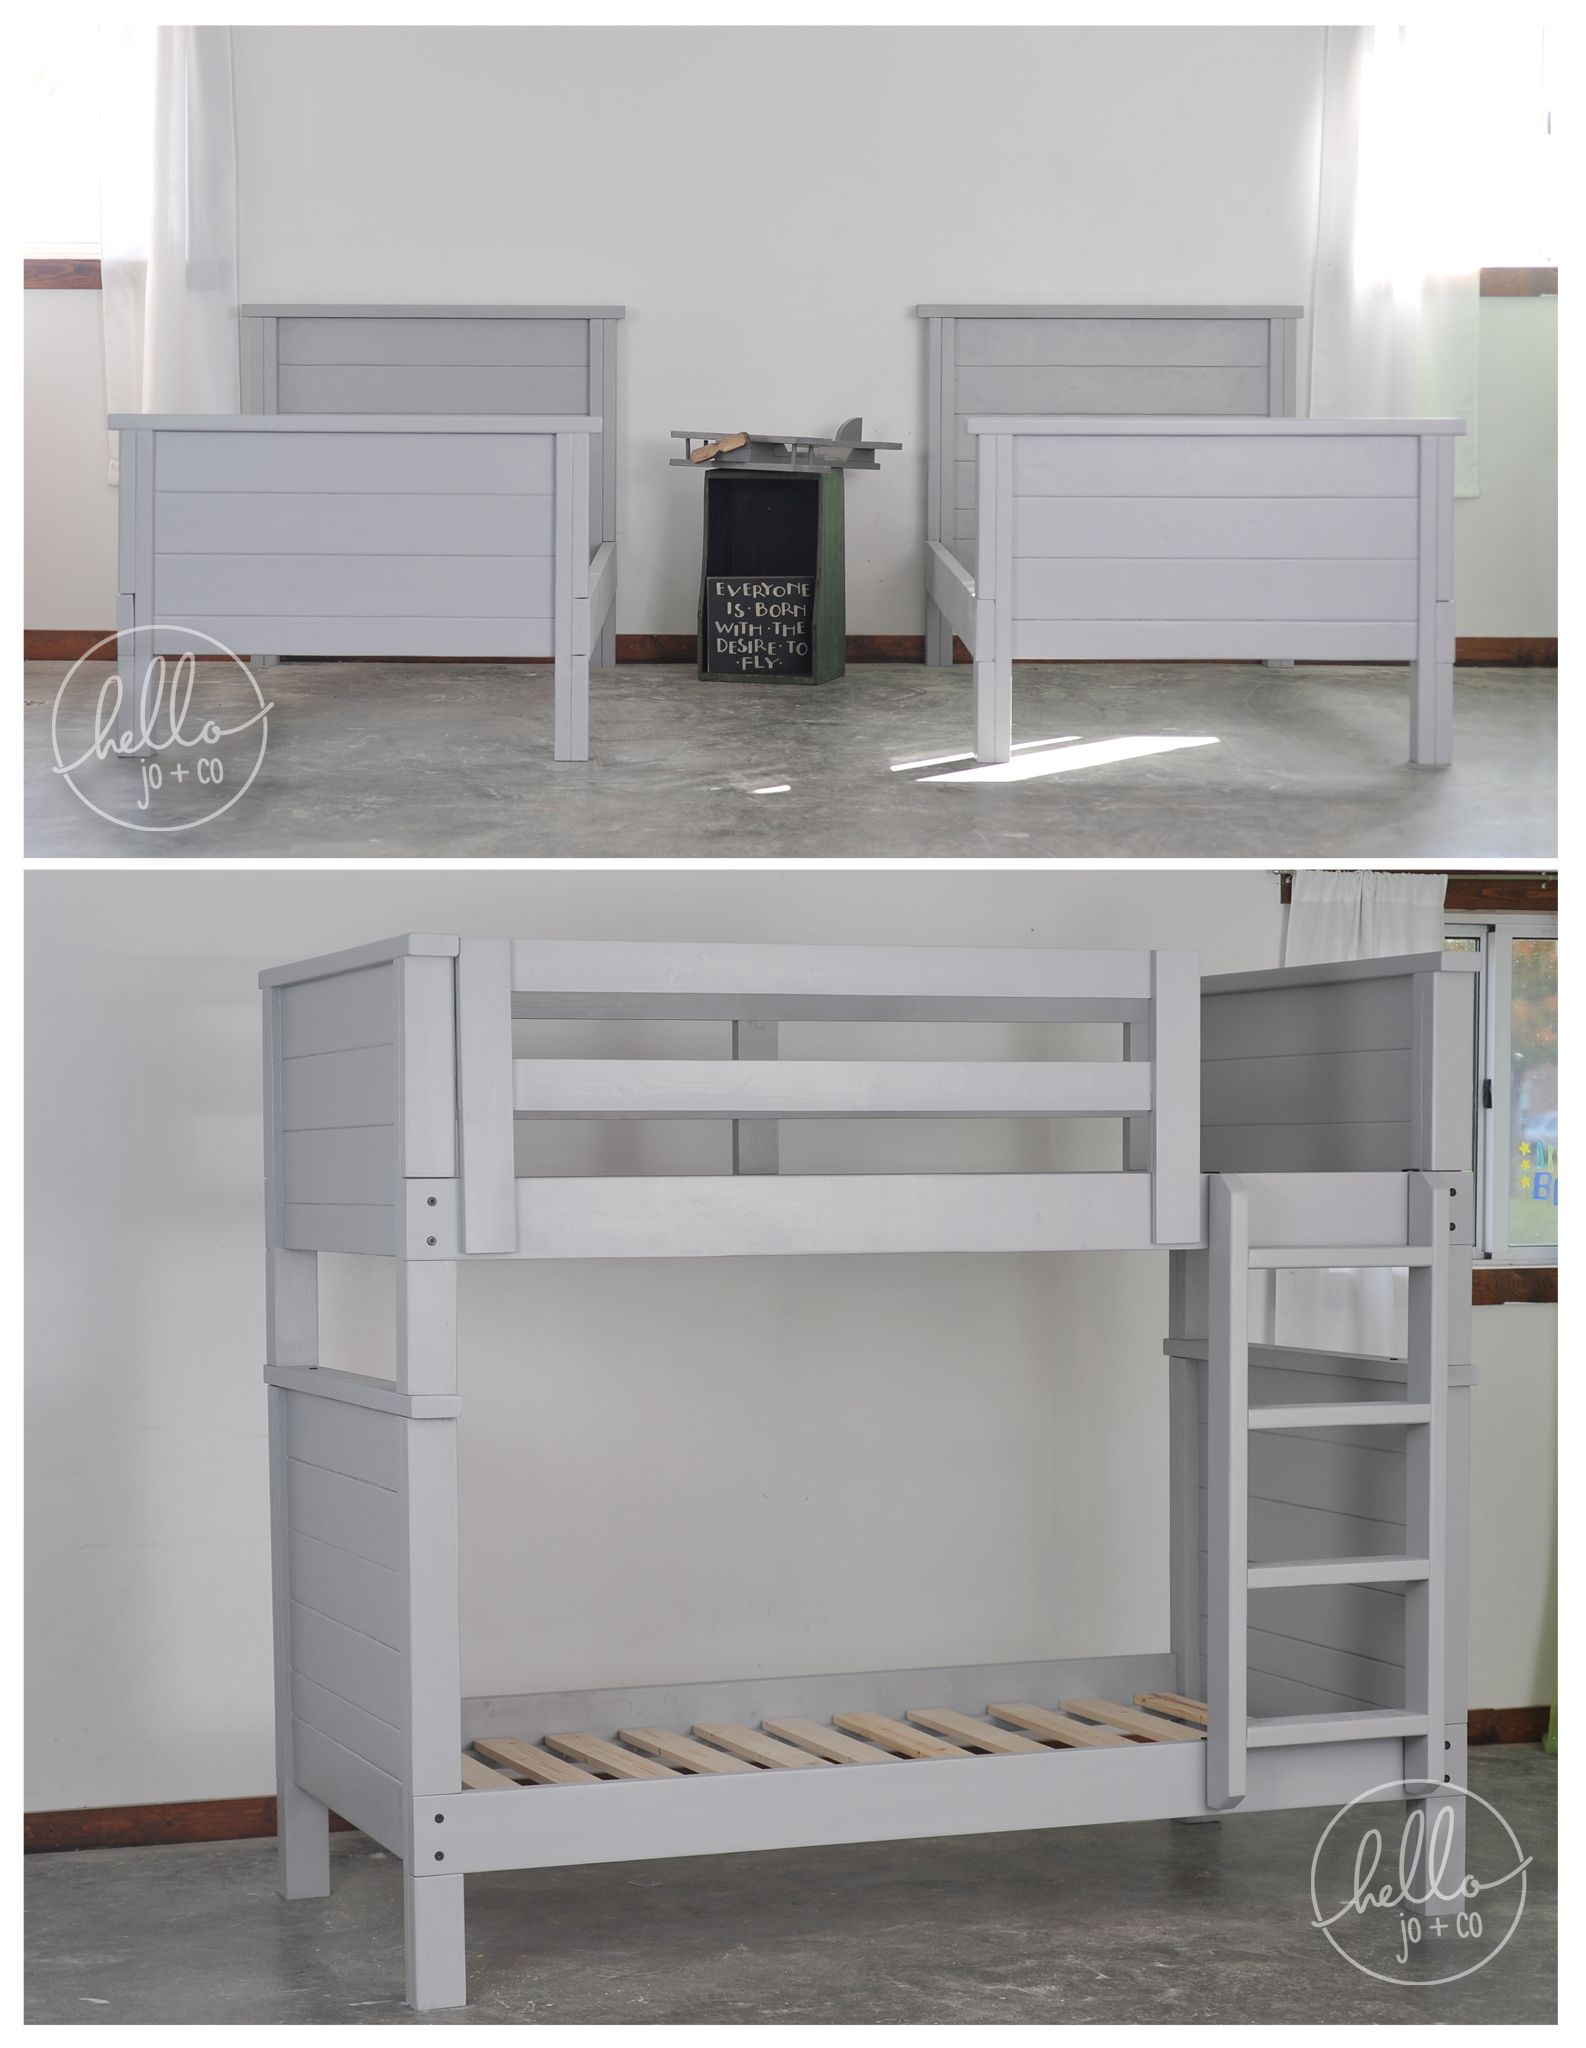 Stackable Twin Beds Hellojoandco Super Duper Sturdy Solid Wood Stackable